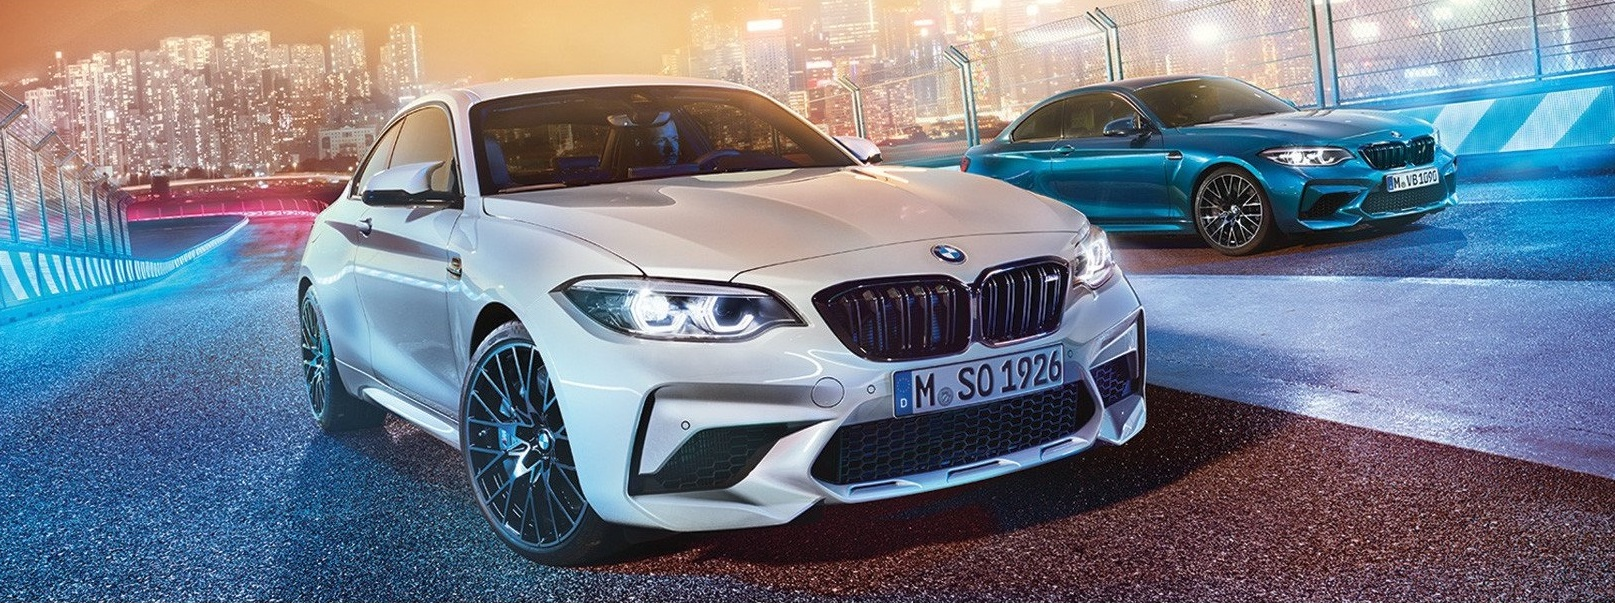 Name:  BMWBLOG-LEAKED-BMW-M2-Competition-51.jpeg Views: 74217 Size:  511.8 KB